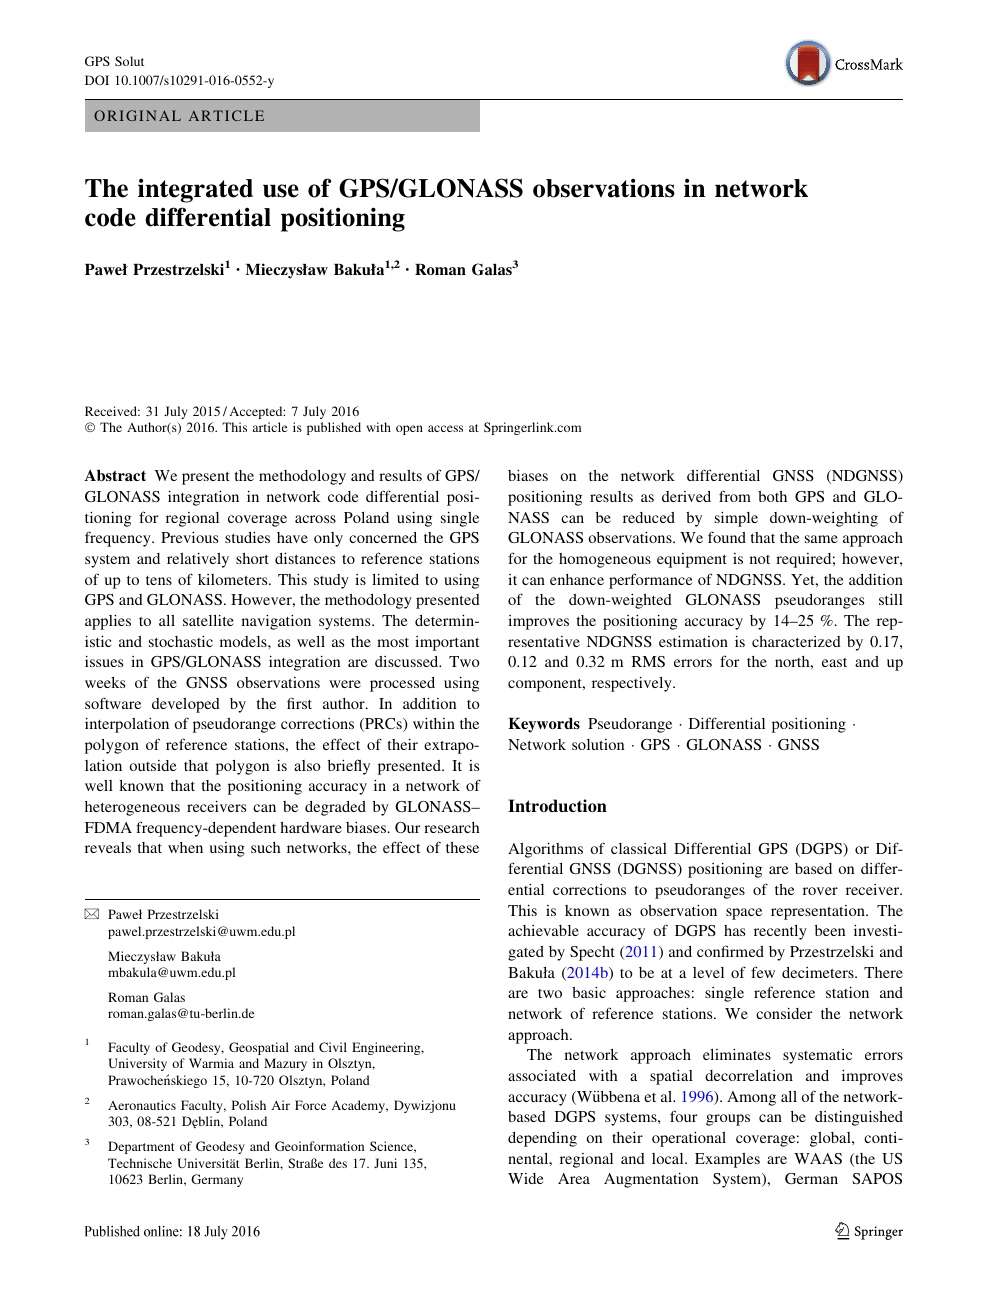 The integrated use of GPS/GLONASS observations in network